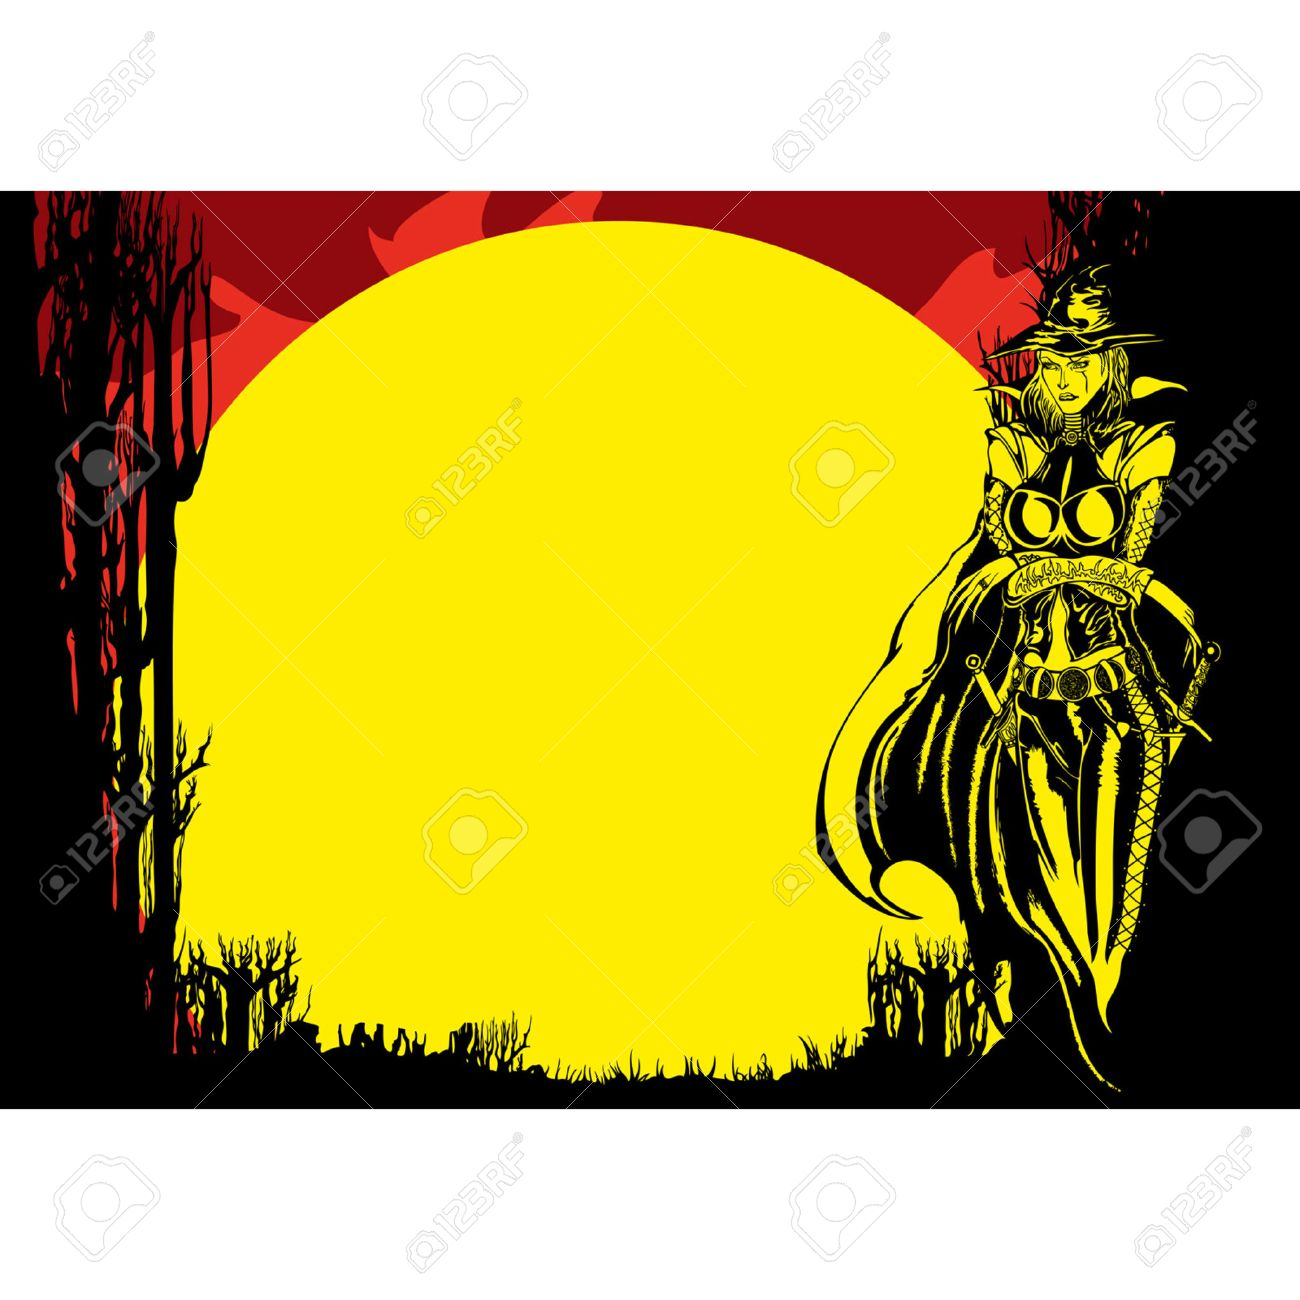 1300x1300 Halloween Flyer With Witch In The Forest In The Moonlight, Vector